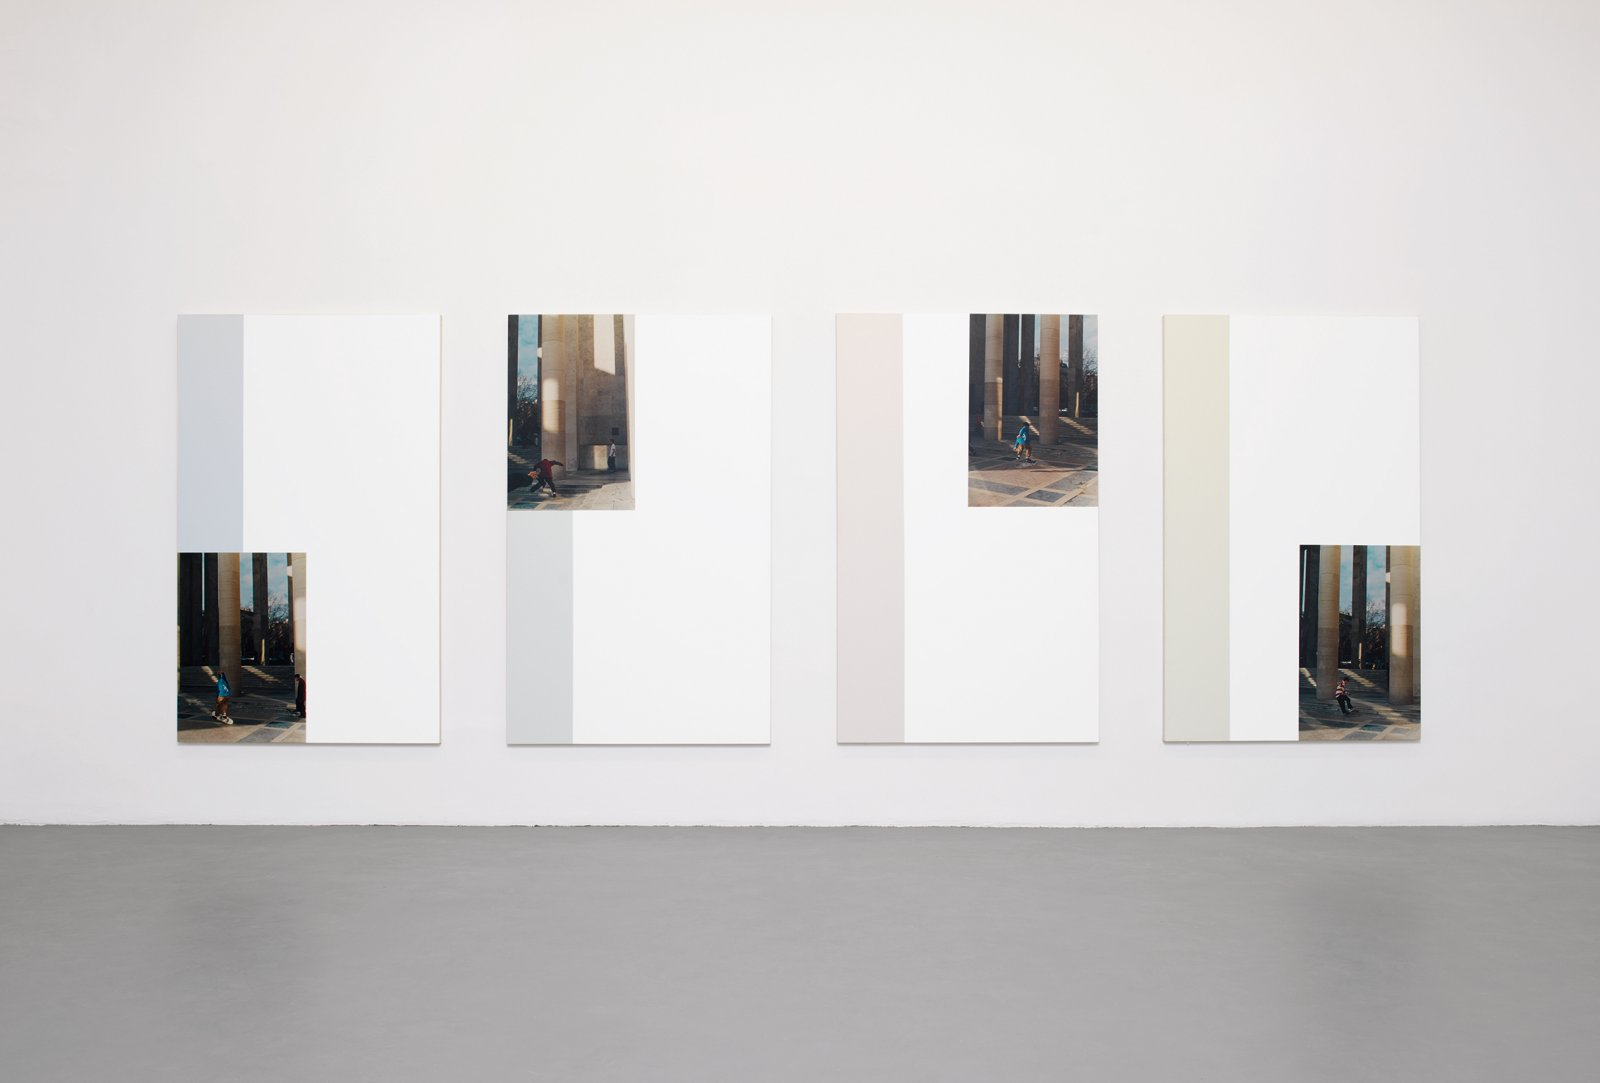 ​​​​​​Ian Wallace, ​Freeplay I–IV, 1996, photolaminate with acrylic on canvas, 78 x 48 in. (198 x 122 cm). Installation view, ​A Literature of Images​, Witte de With, Rotterdam, 2008​​​​​​​​​​​ by Ian Wallace